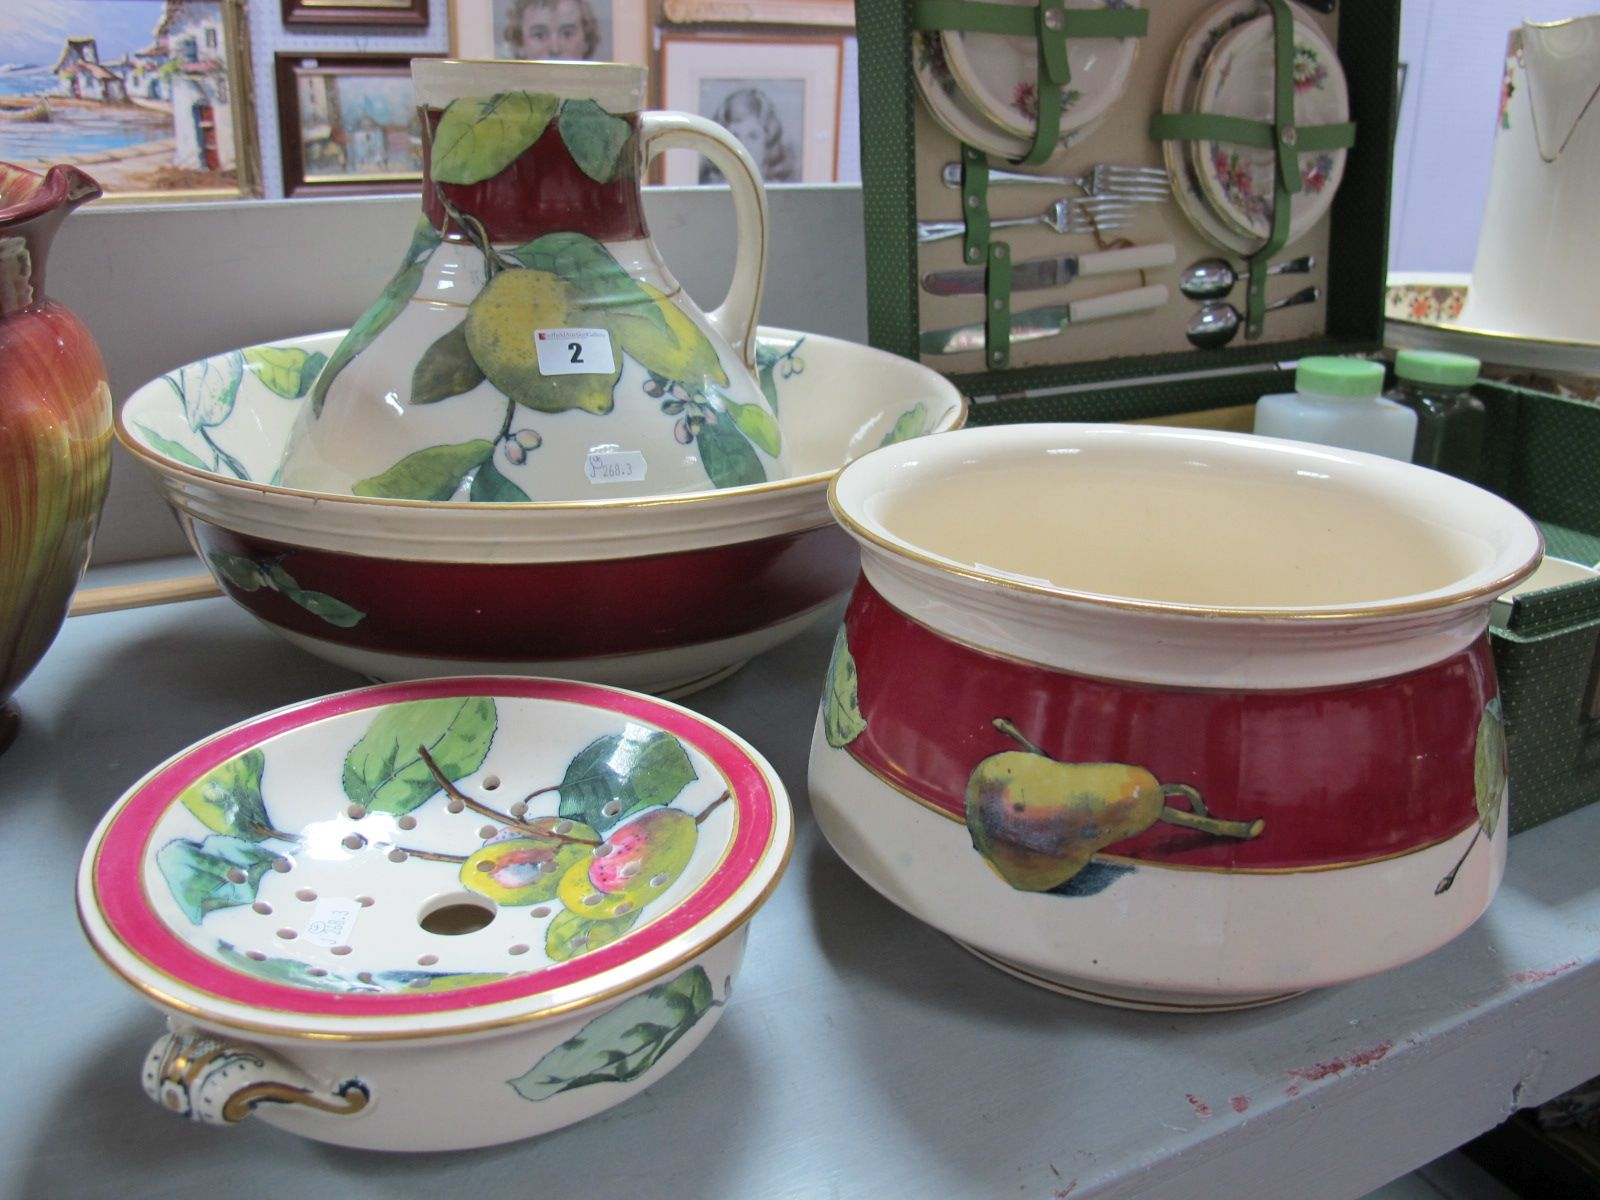 Lot 2 - A Victorian Pottery Four Piece Toilet Set, comprising toilet jug and bowl, chamber pot and soap